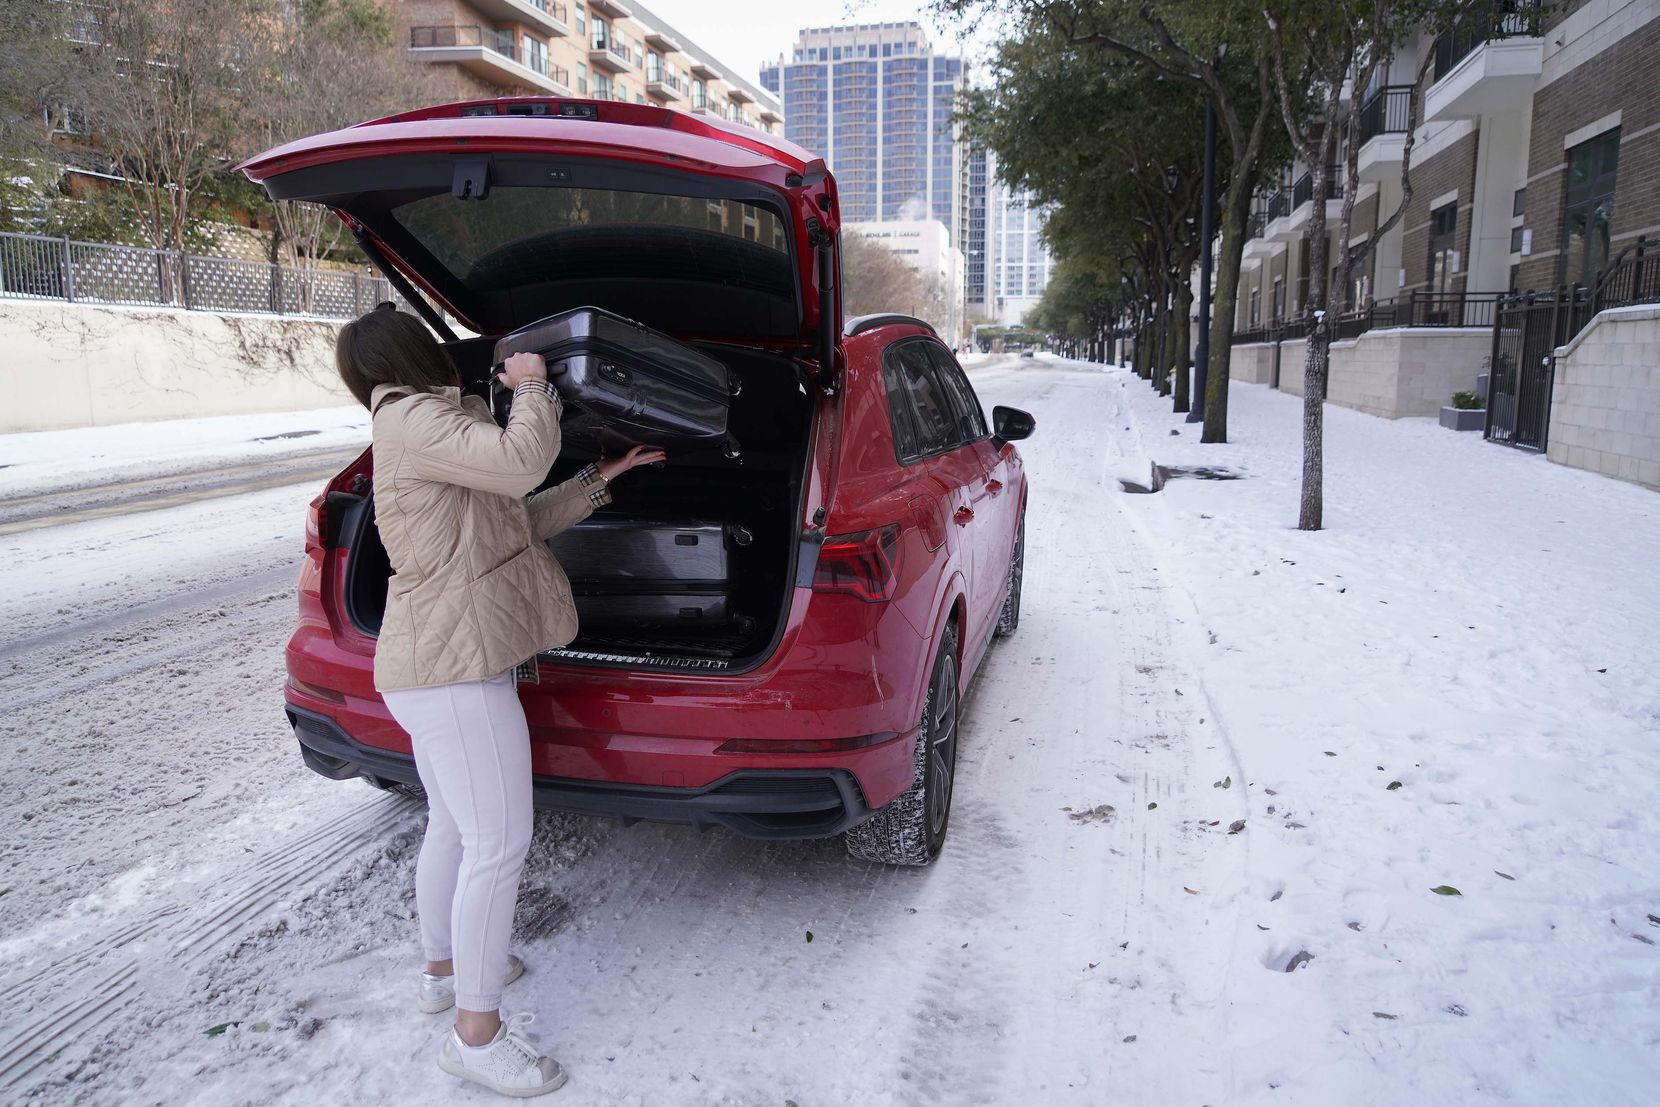 Abby Belton loads bags into her car as she prepares to depart her apartment in Victory Park after a winter storm brought snow and continued freezing temperatures to North Texas. With her apartment unlivable, Belton said she was leaving town so she could continue working. (Smiley N. Pool/The Dallas Morning News)